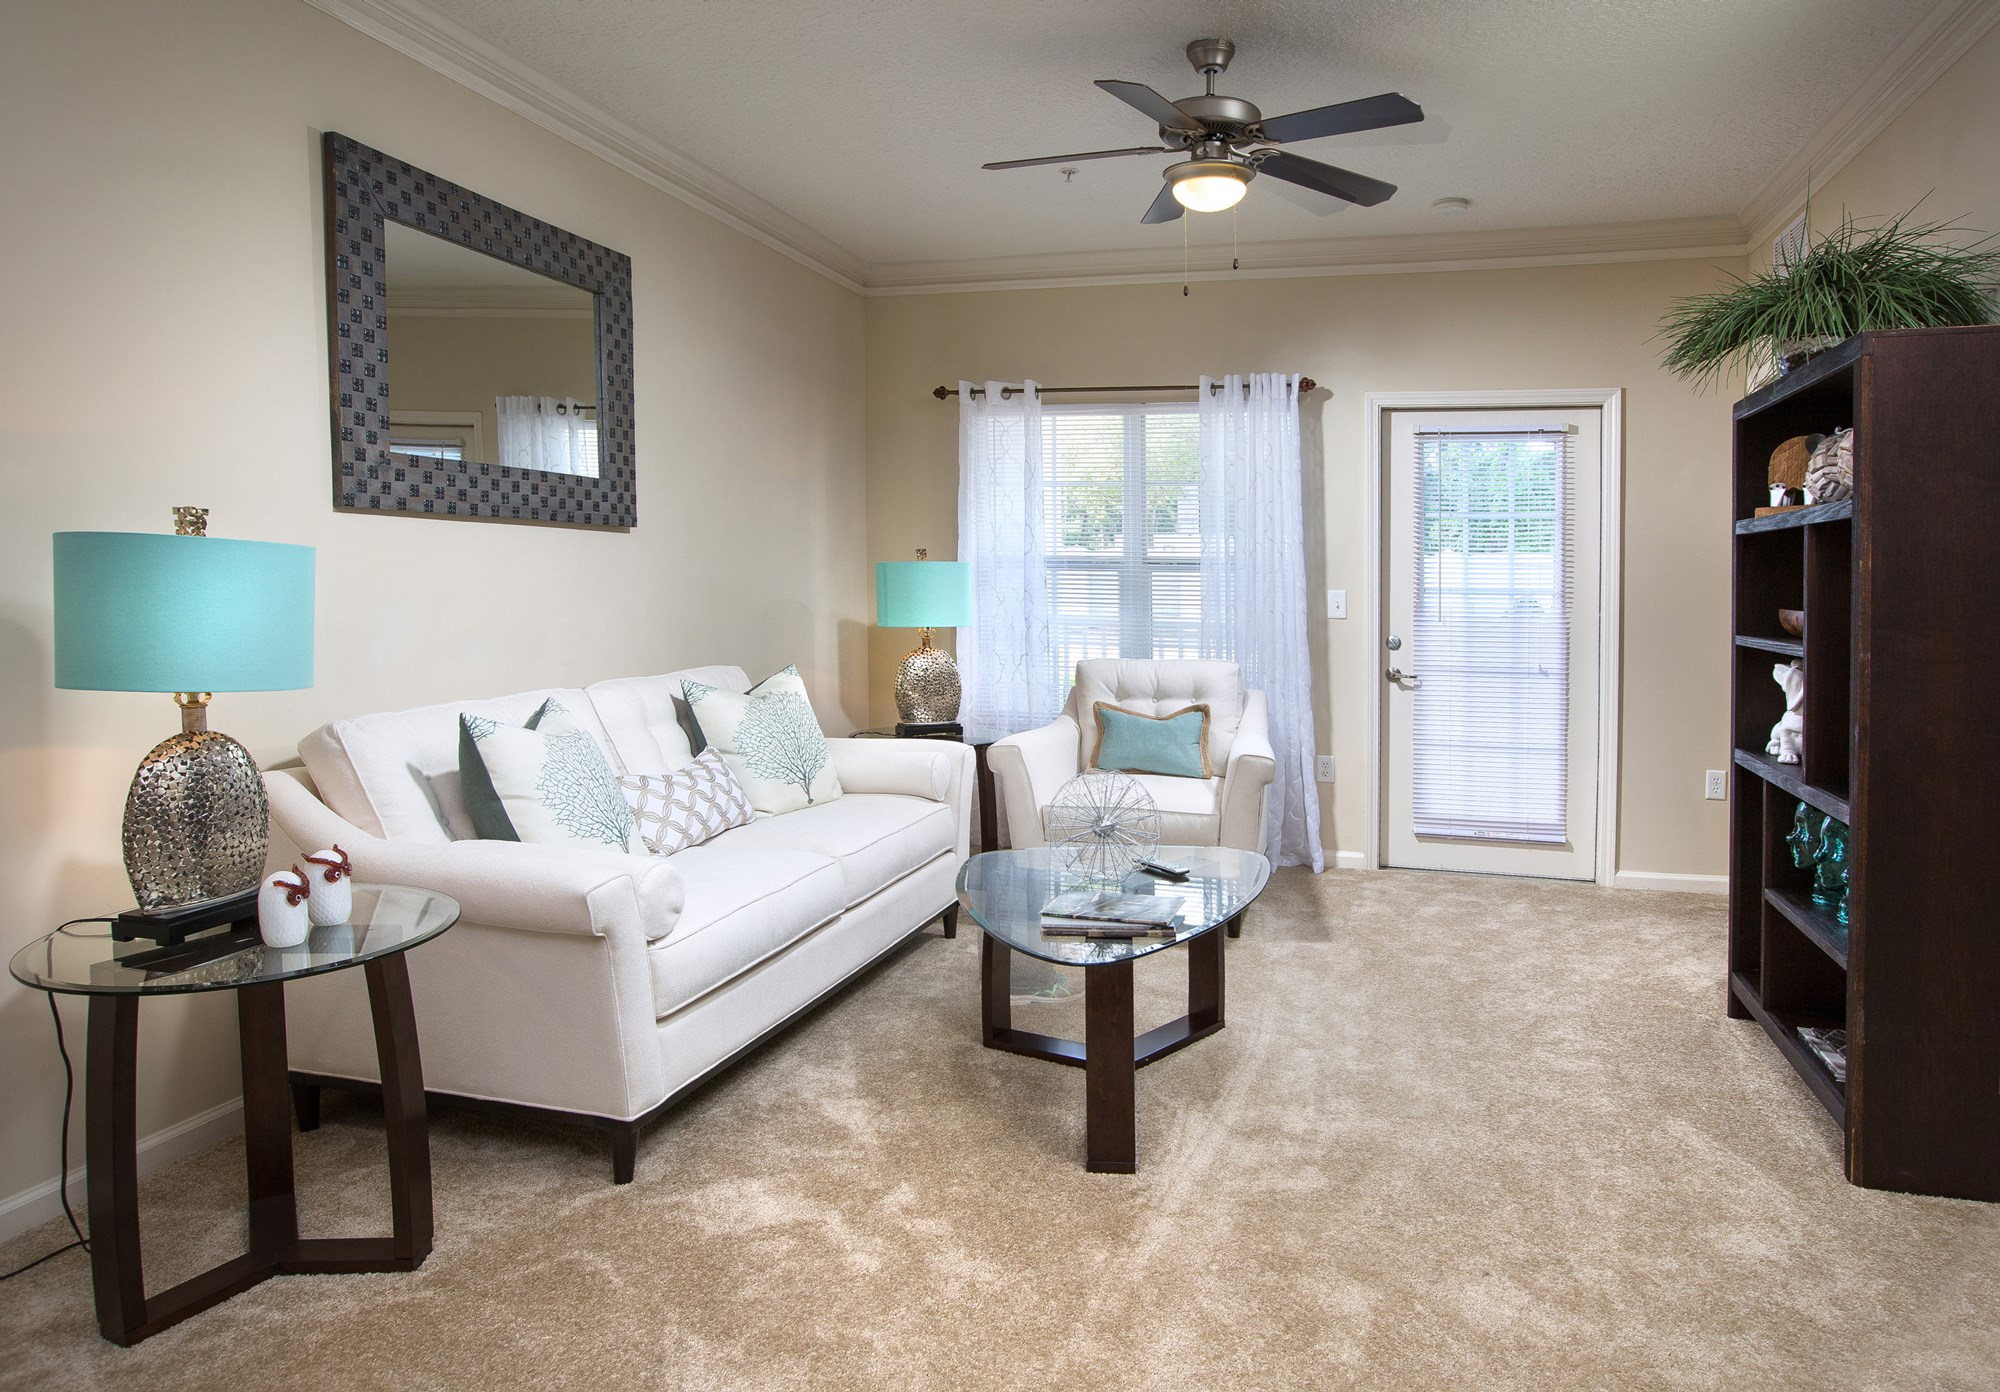 Living Room at Magnolia Village Apartments in Jacksonville, FL